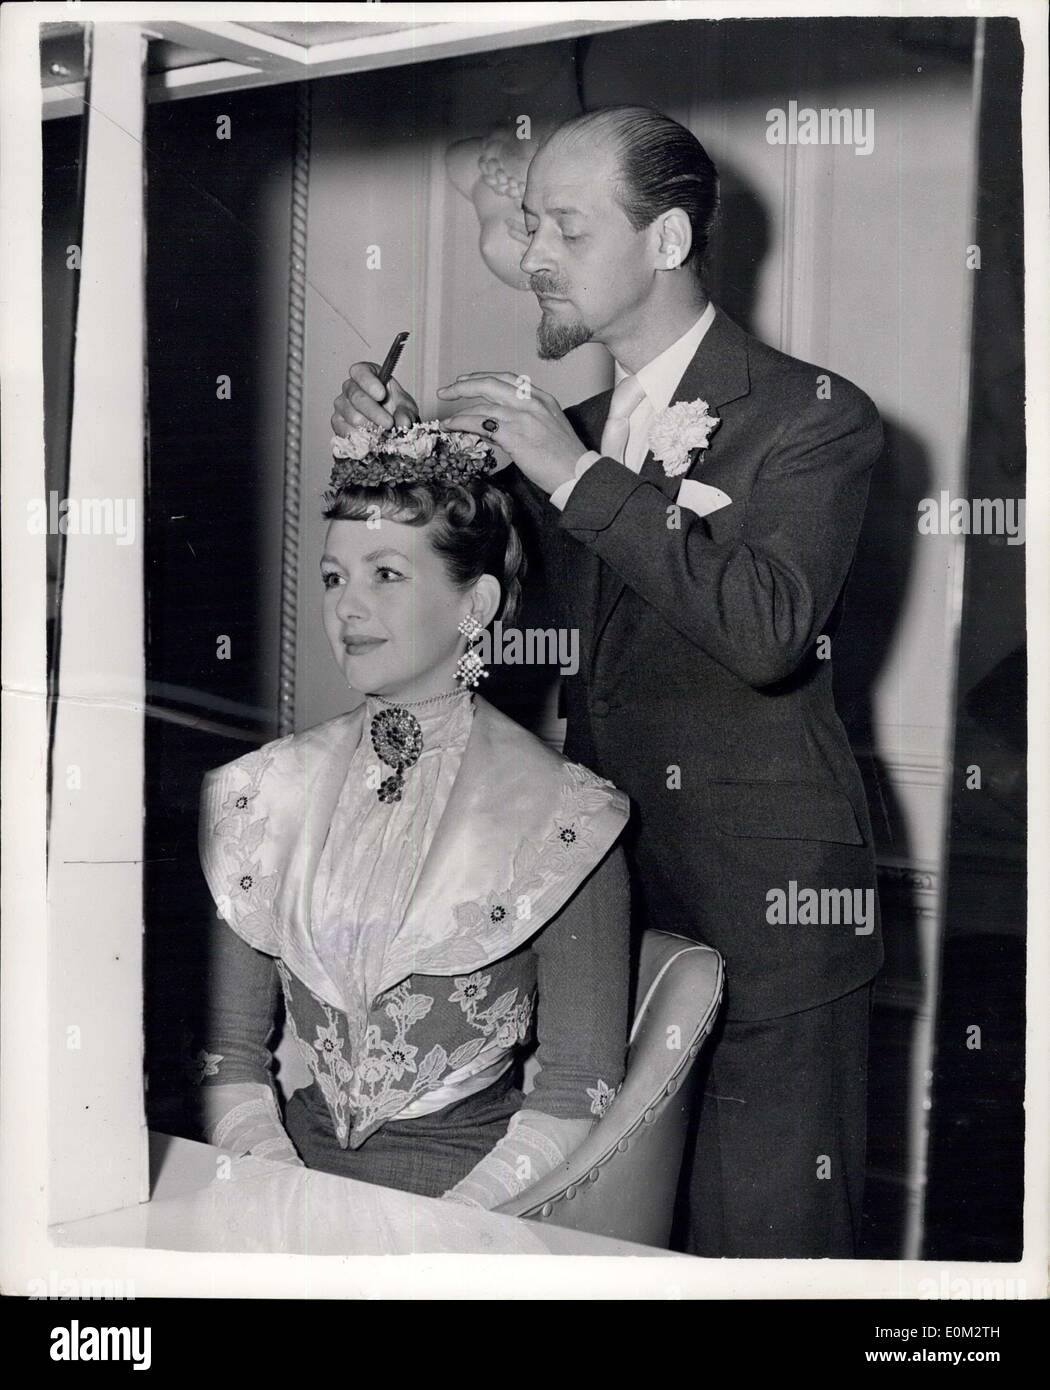 May 14, 1953 - The Hon. Mrs. Gerald Legge has a special hair-do 19th. Germany for Charity Show: The Hon. Mrs. Gerald Legge who is playing the part of a coquette in a special production of ''Lord and Lady Algy'' - paid a visit to the West End Hair Stylist Steiner to receive a special 19th. century hair-o. The show is to be produced aid the Children's Aid Association. Other members of the cast include Mrs. Ghislaine Alexander; Lord Porchester; Lord Ednam and Billie Wallace. Photo Shows Mrs. Gerald Legge having her hair dressed - 19th. century style - by Steiner. - Stock Image